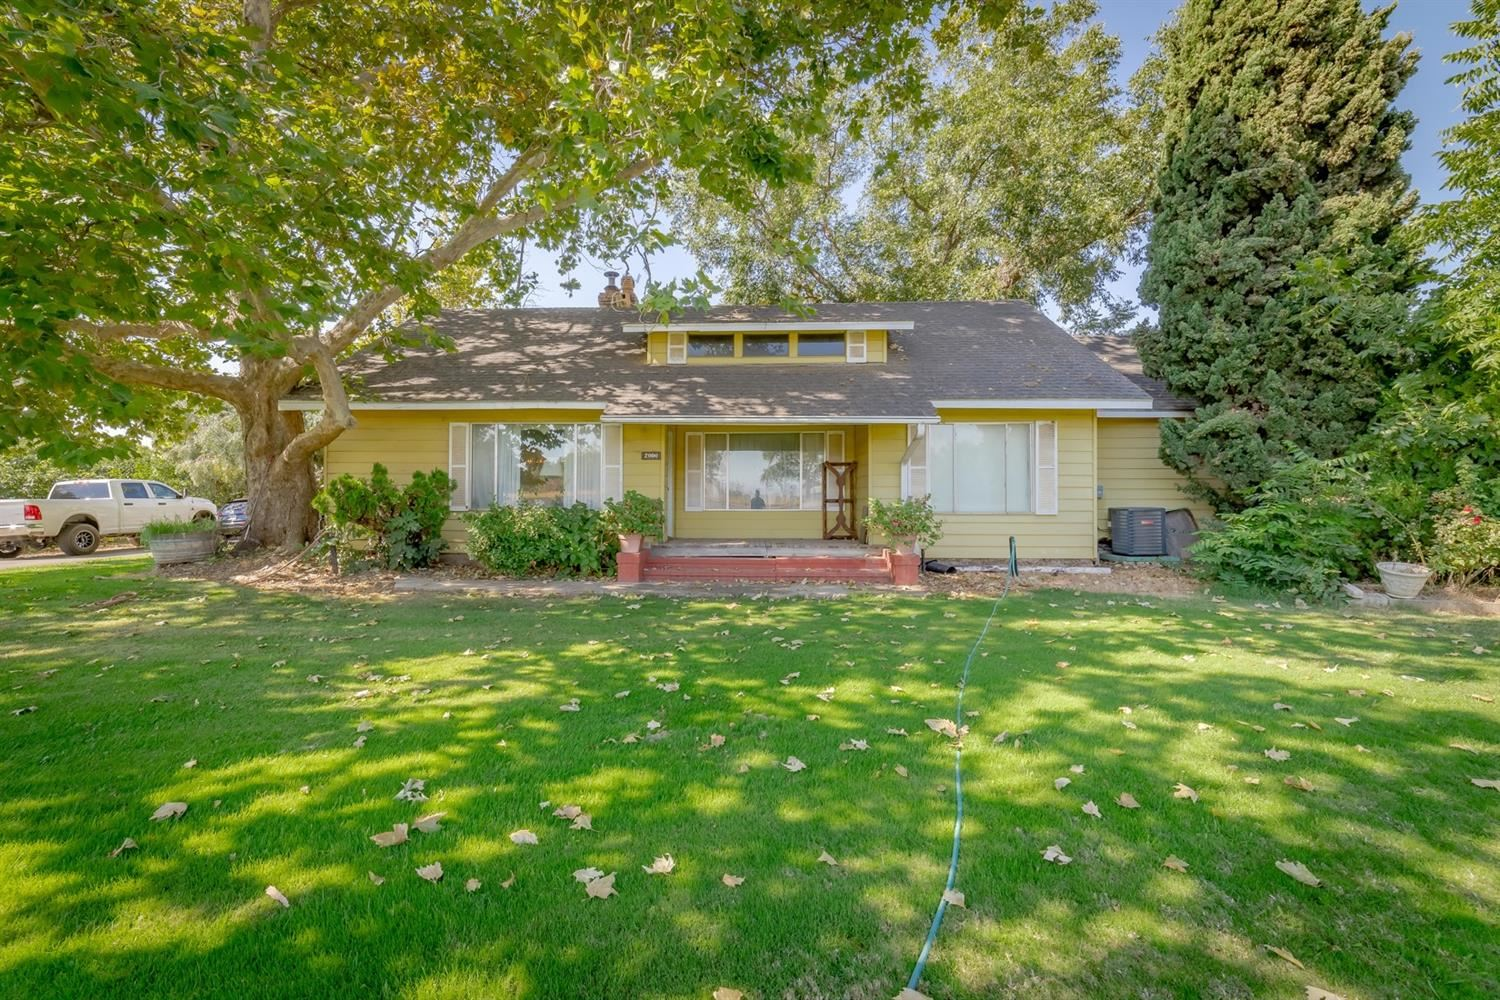 2090 State Highway 65, Wheatland, CA 95692 - #: 202002904